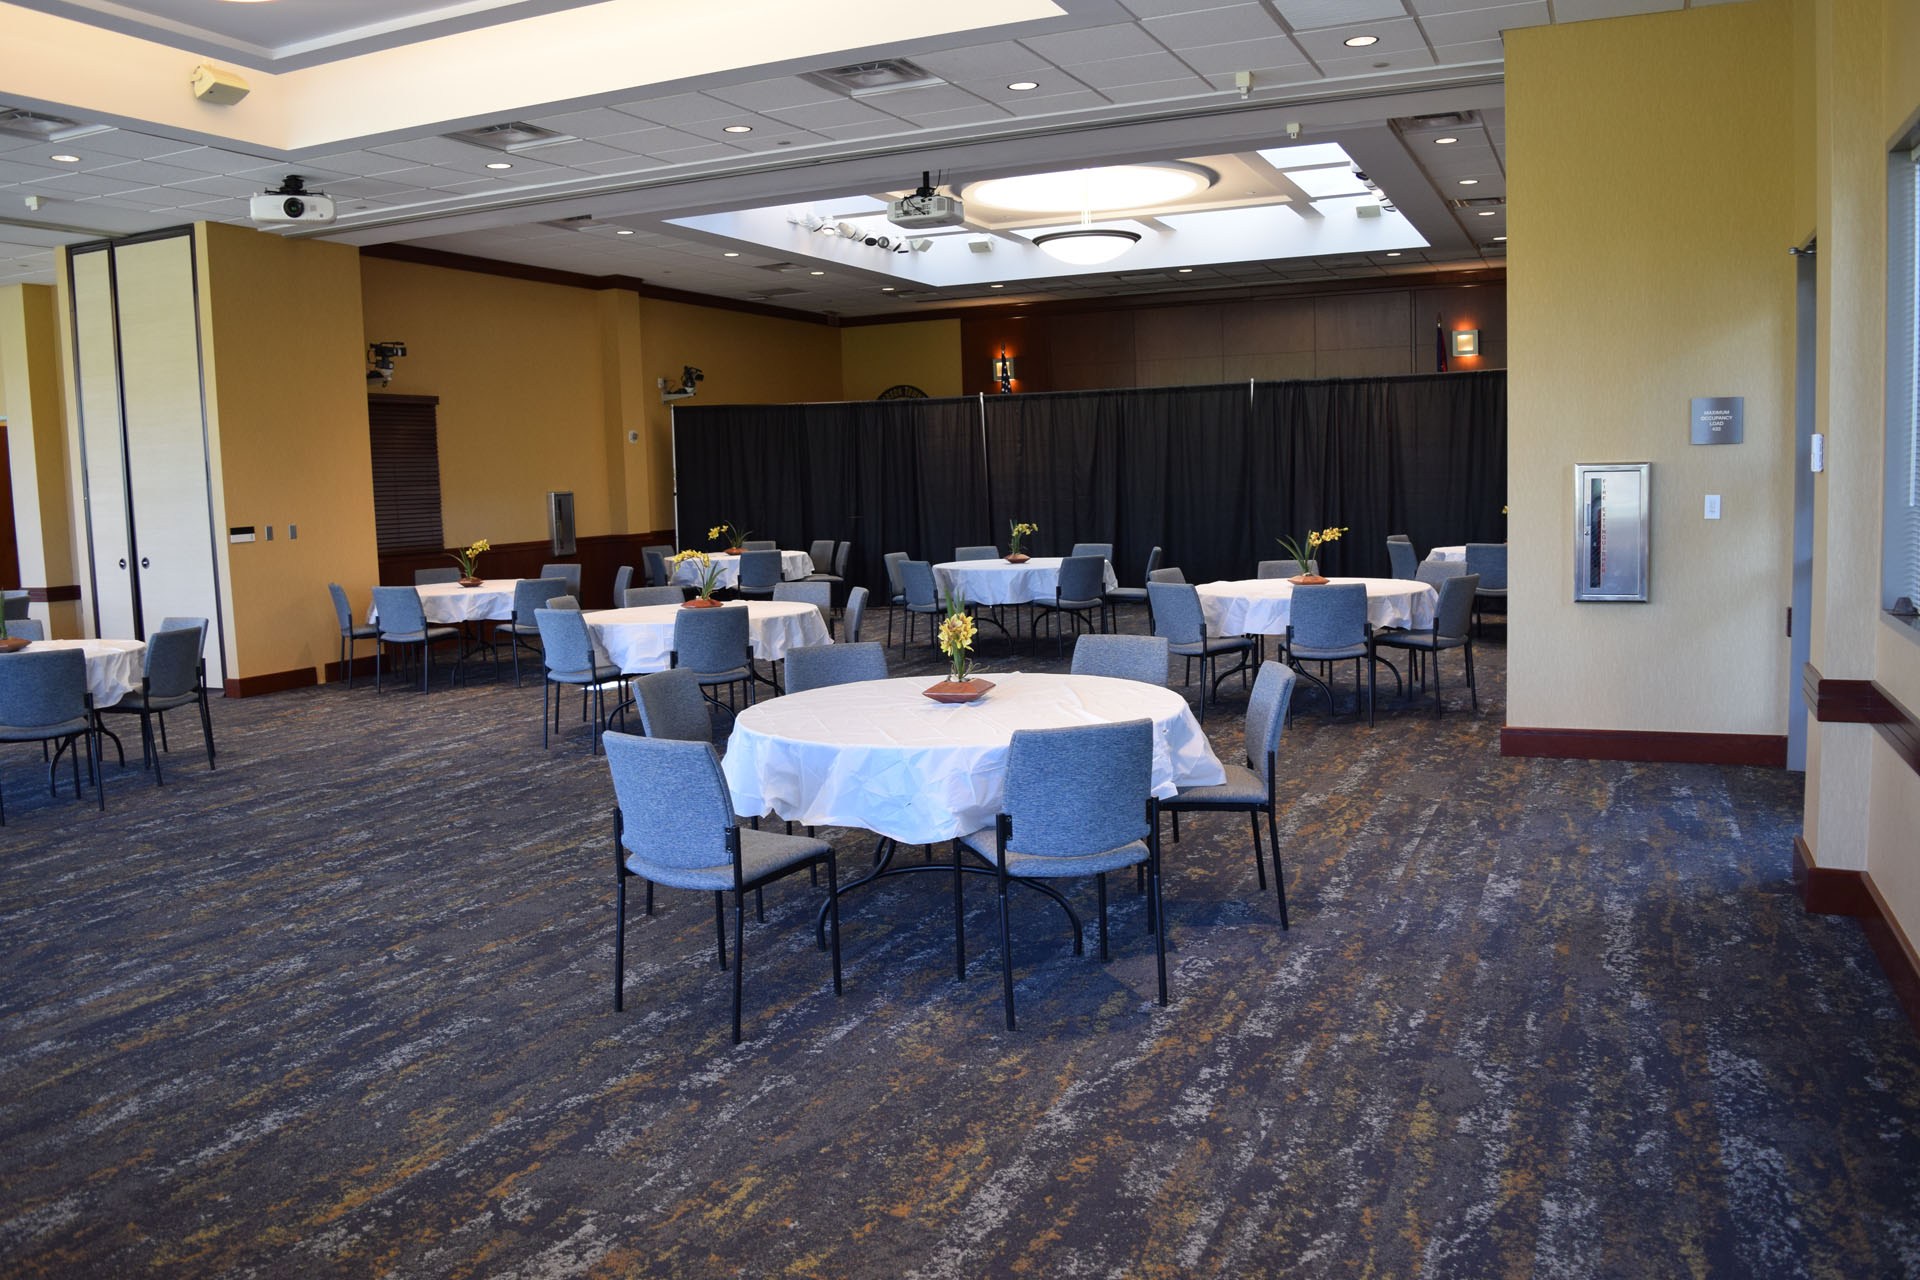 Chairs and Tables setup in the Anderson Center Community Meeting Room